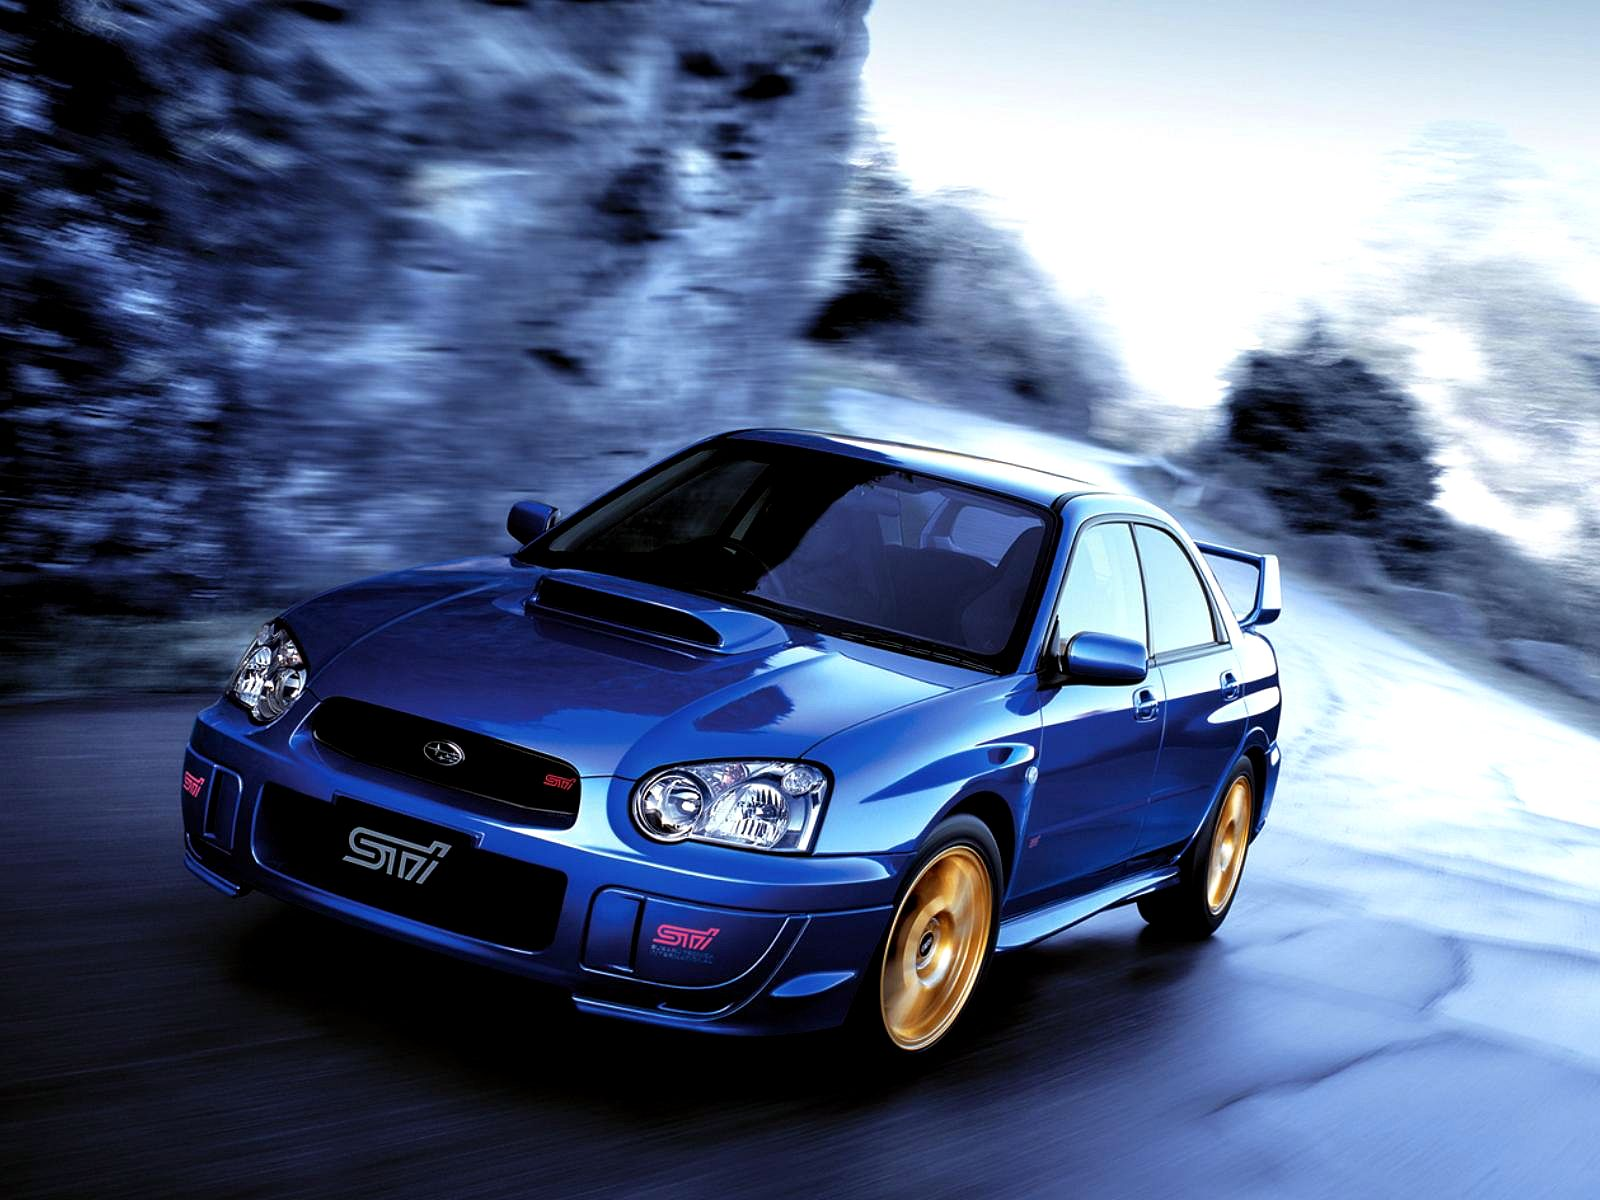 Subaru Impreza WRX Sti 2004. Res: 1600x1200 / Size:203kb. Views: 85660